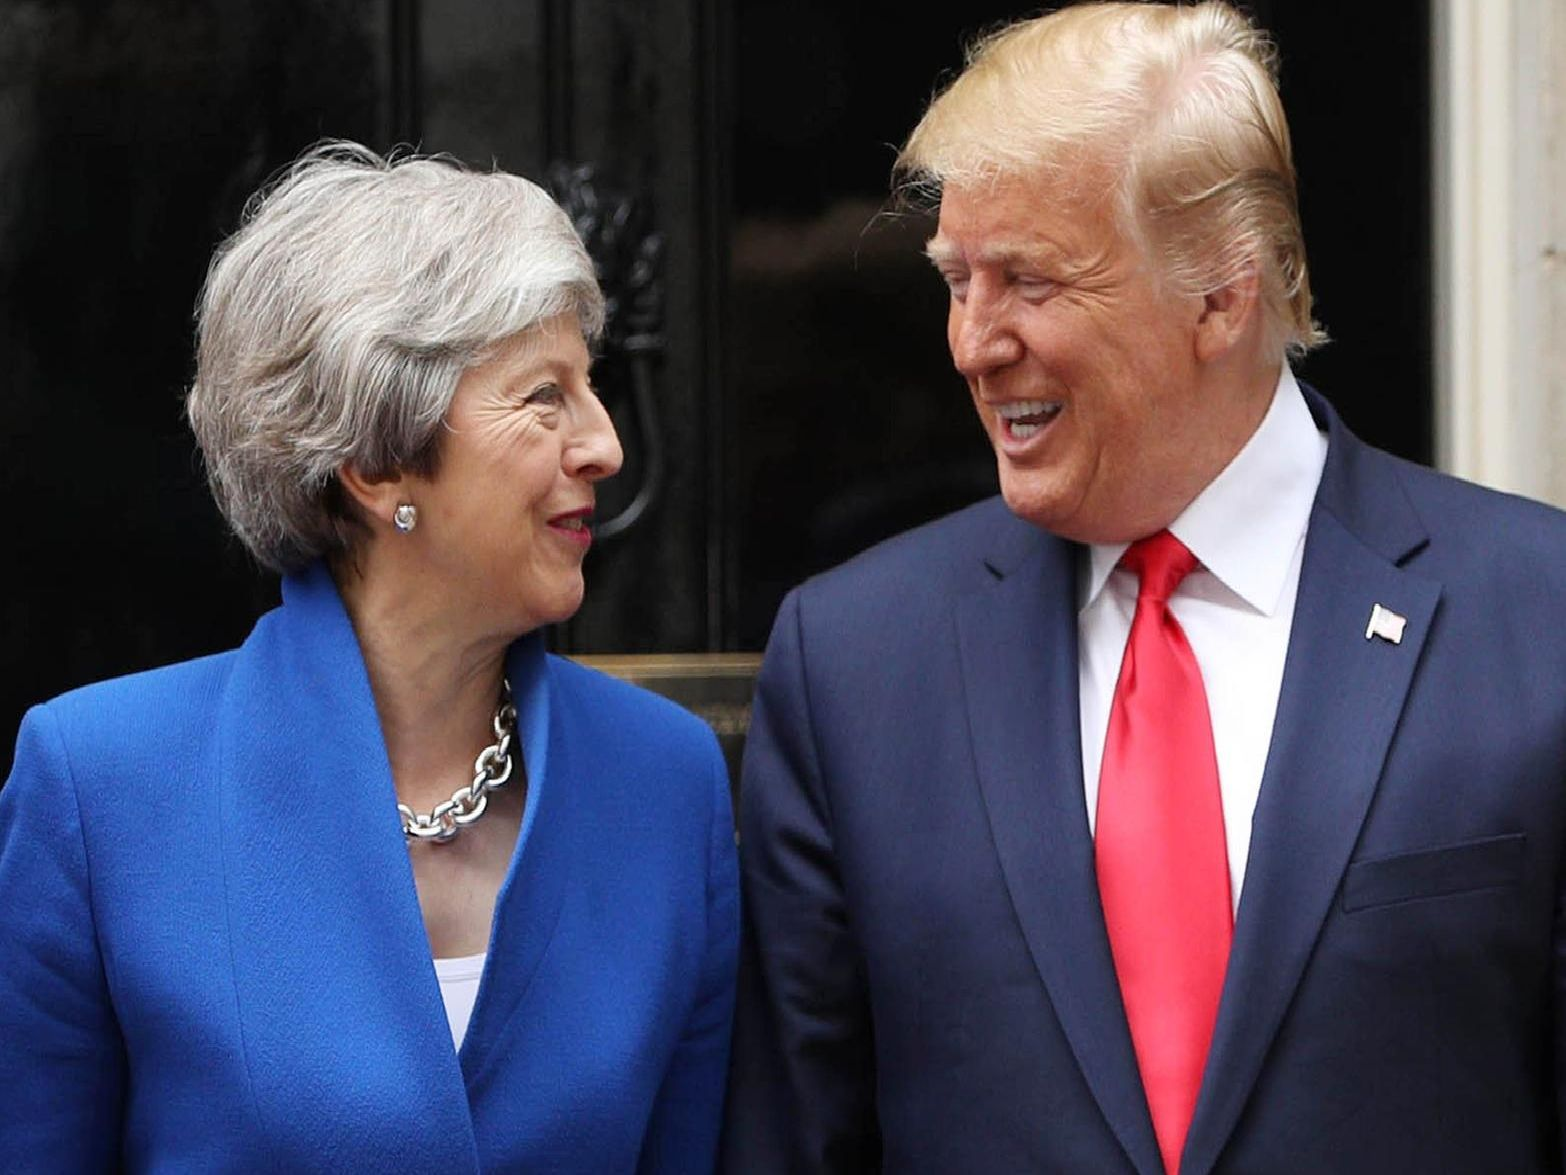 Donald Trump and Theresa May at Downing Street. Photo: Getty Images.